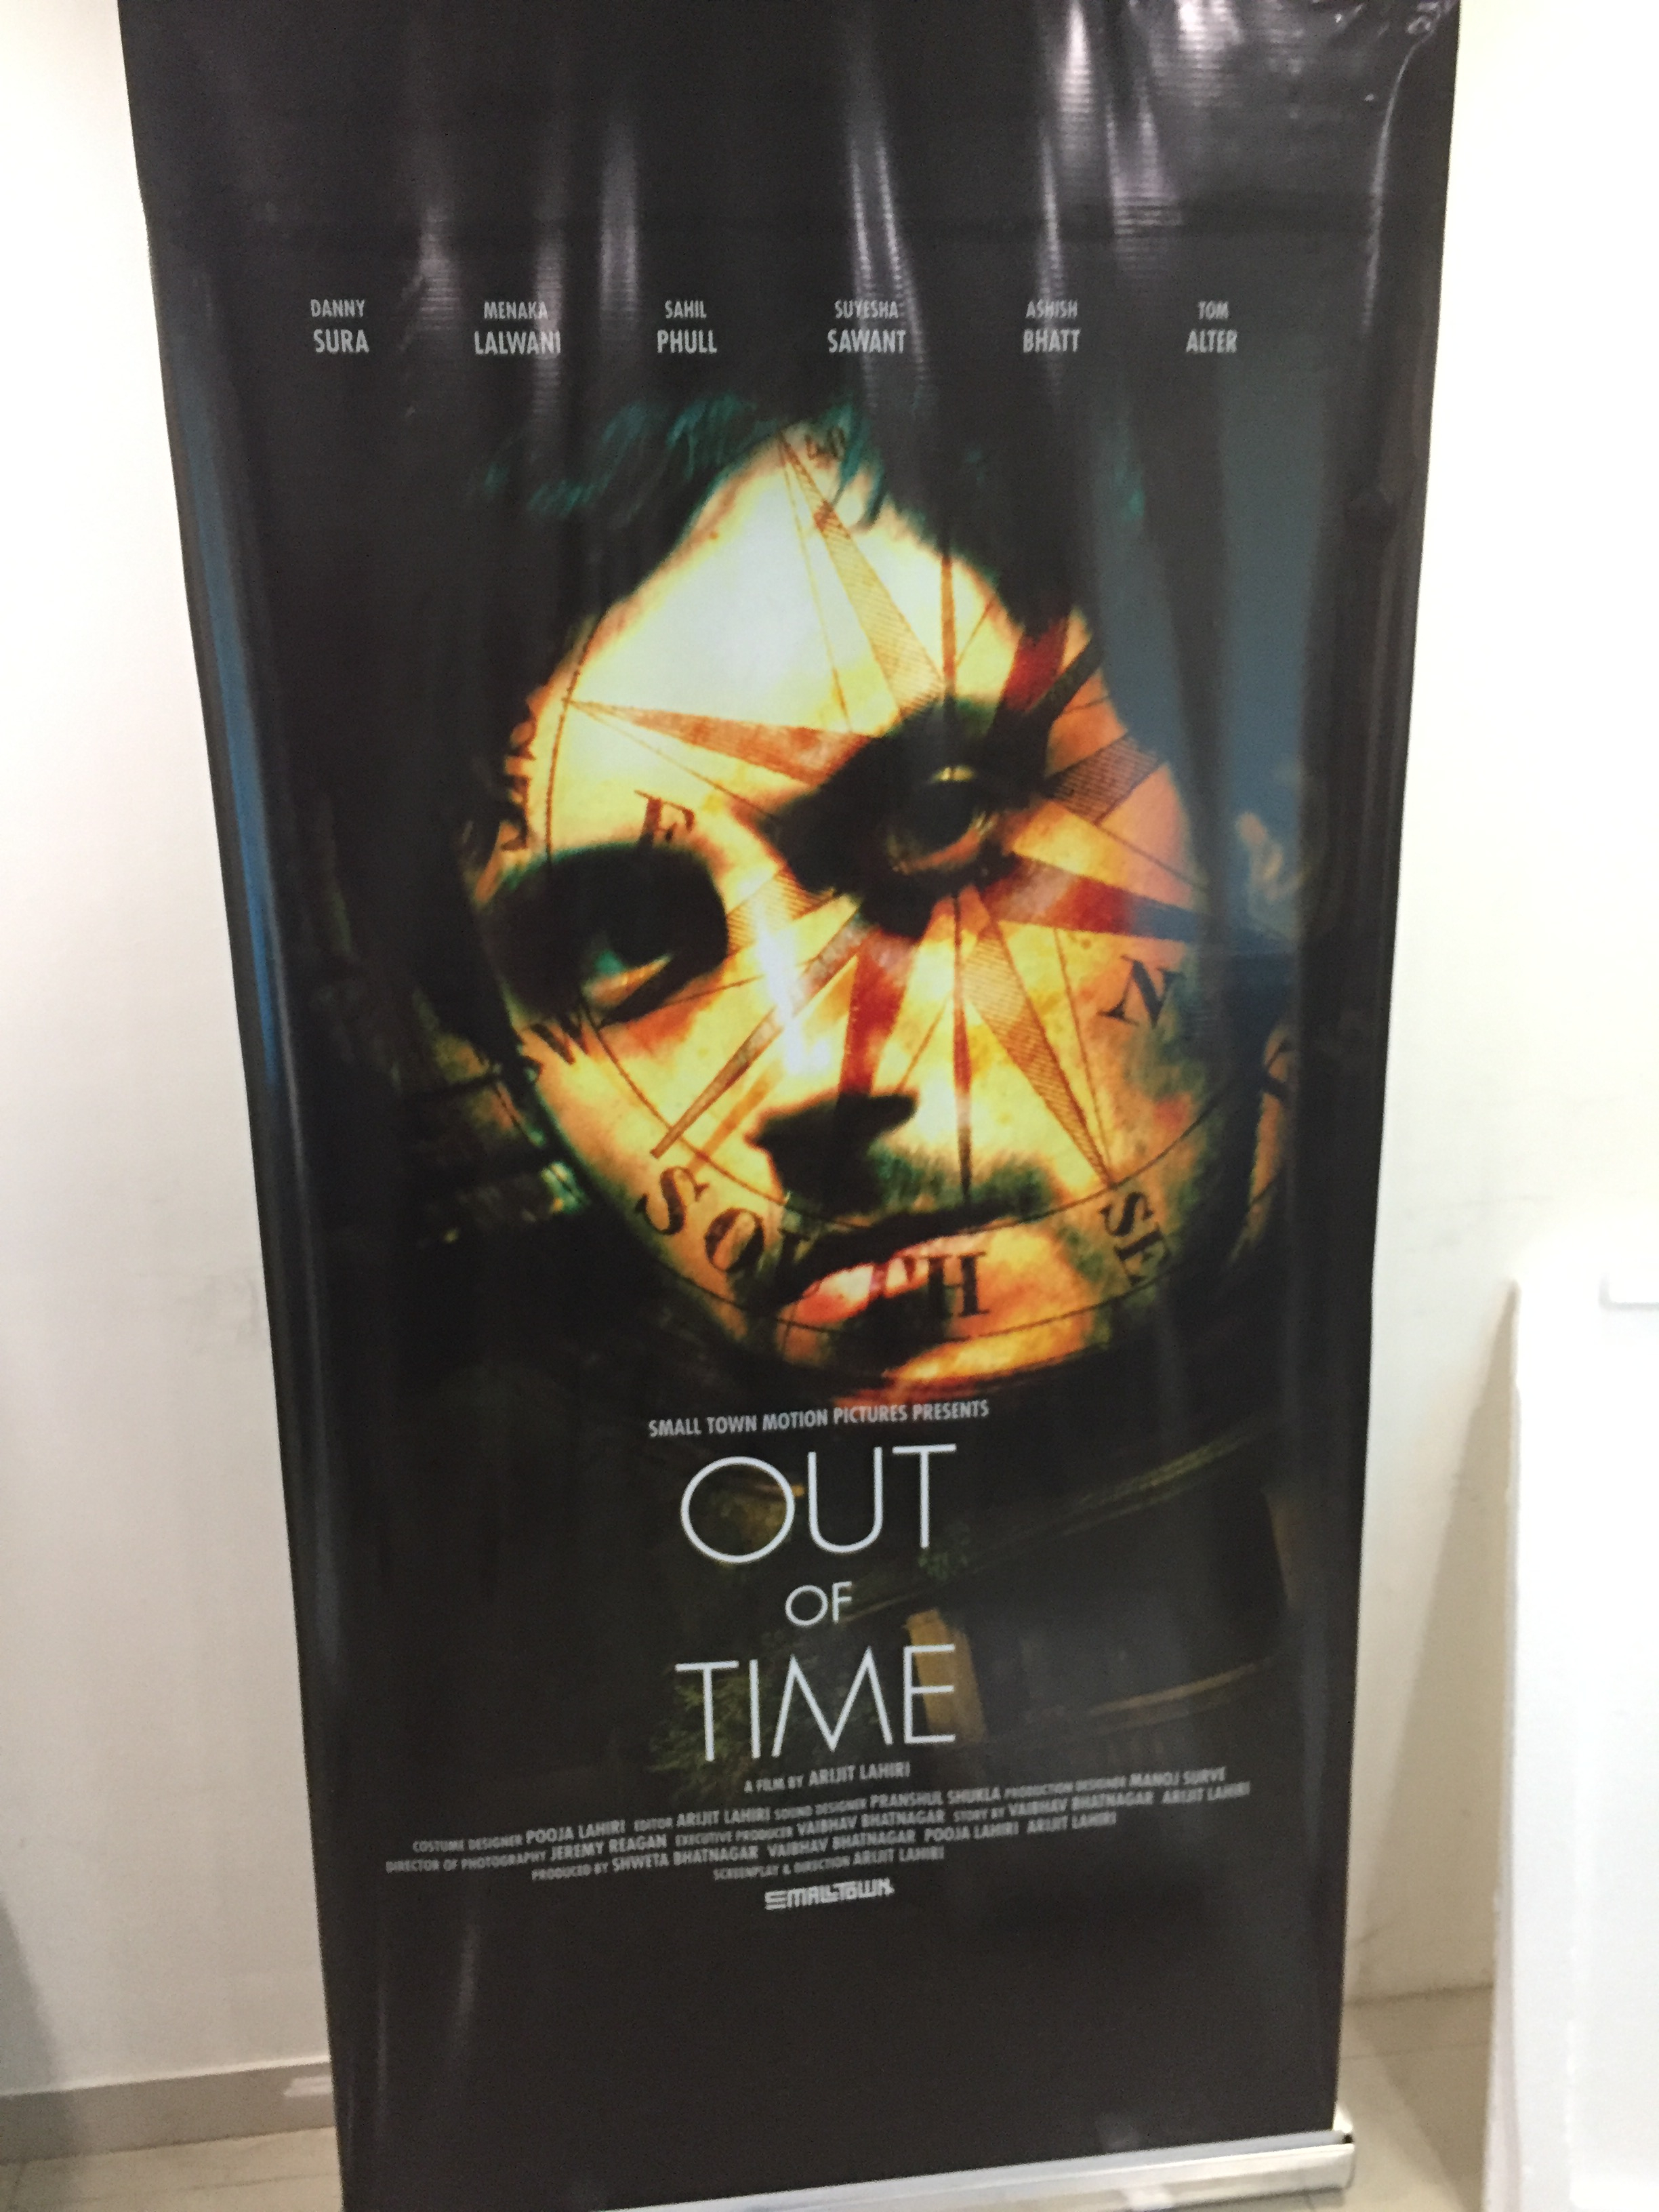 A poster from my upcoming feature film 'Out of Time'.